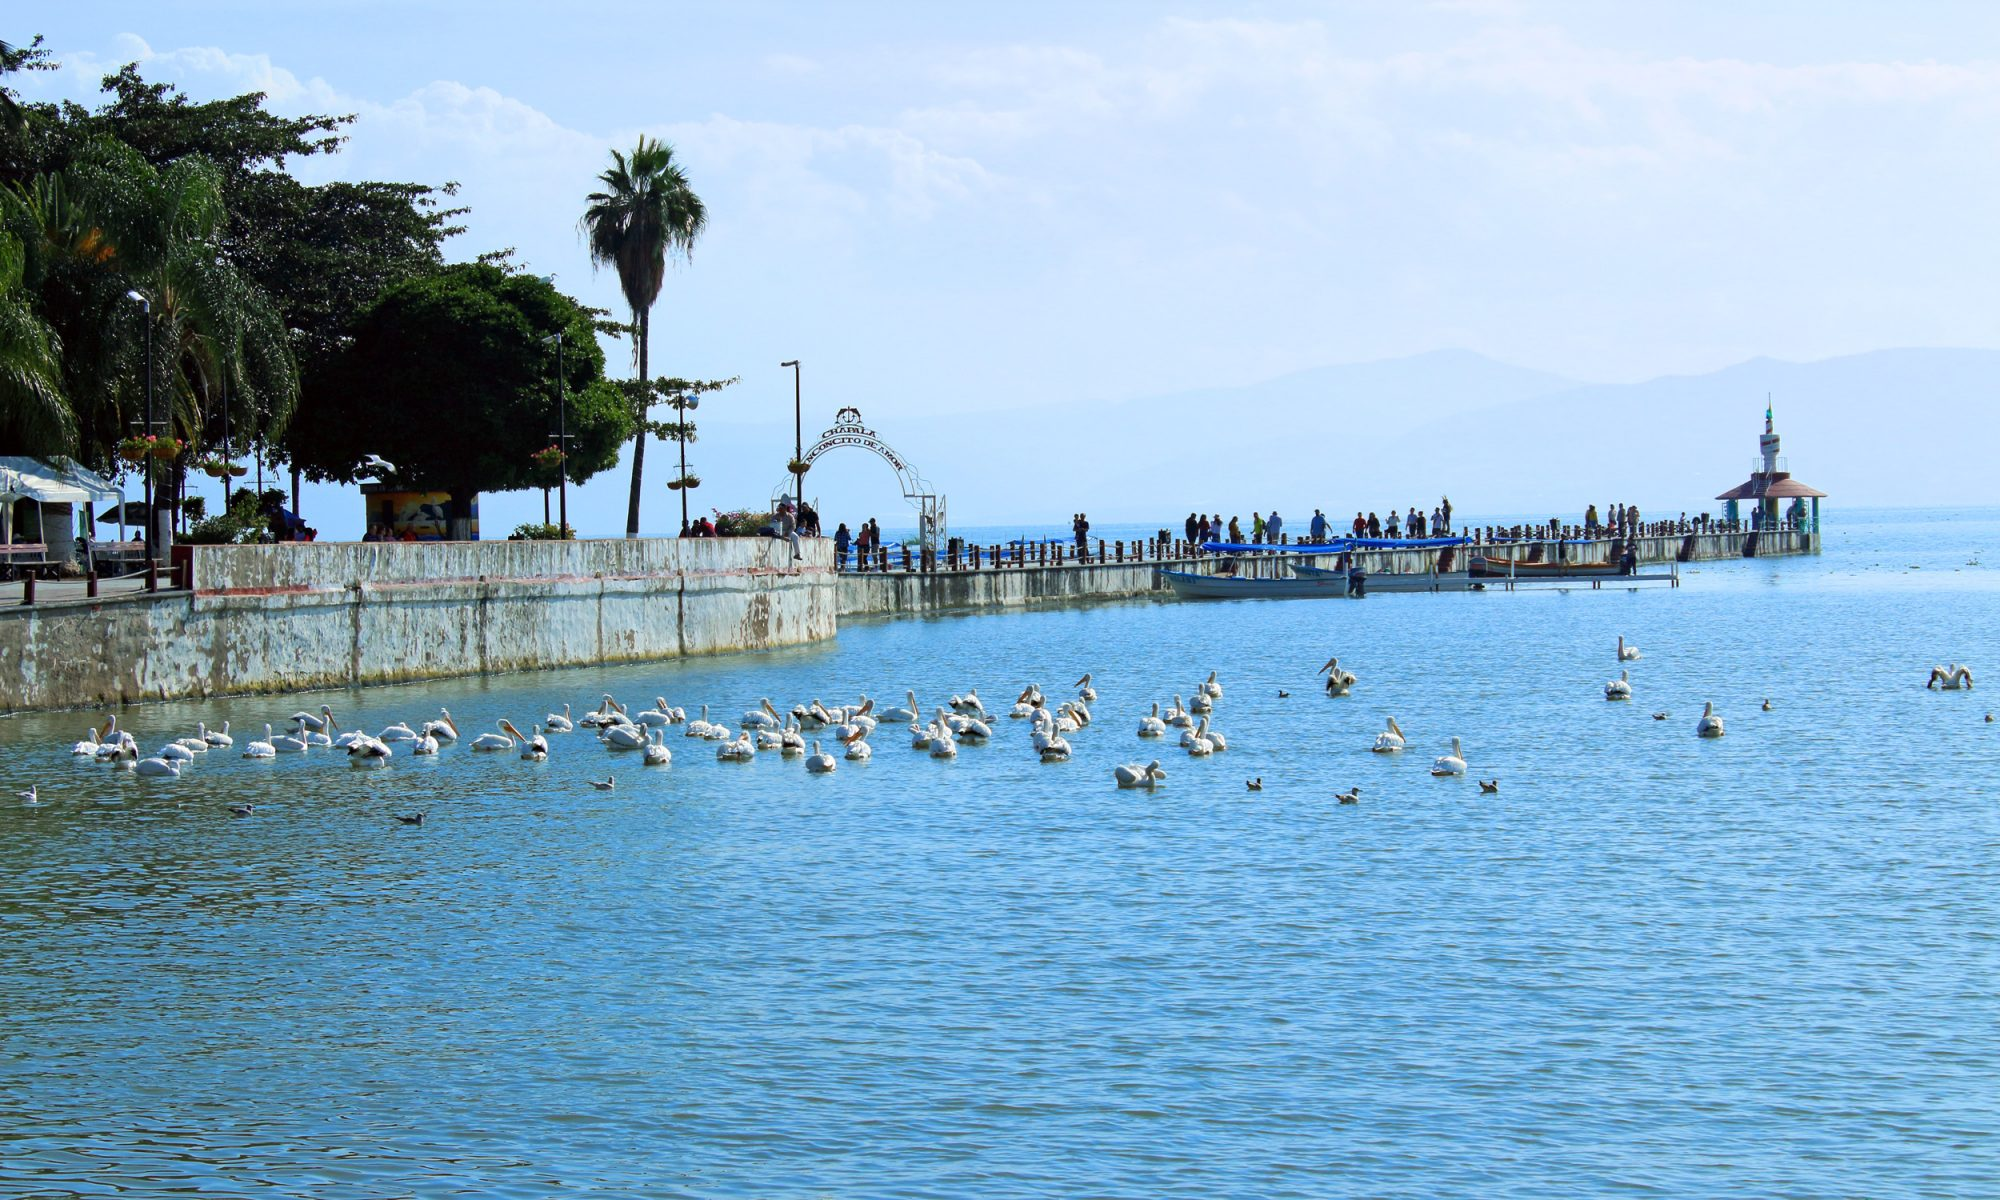 More about Lake Chapala